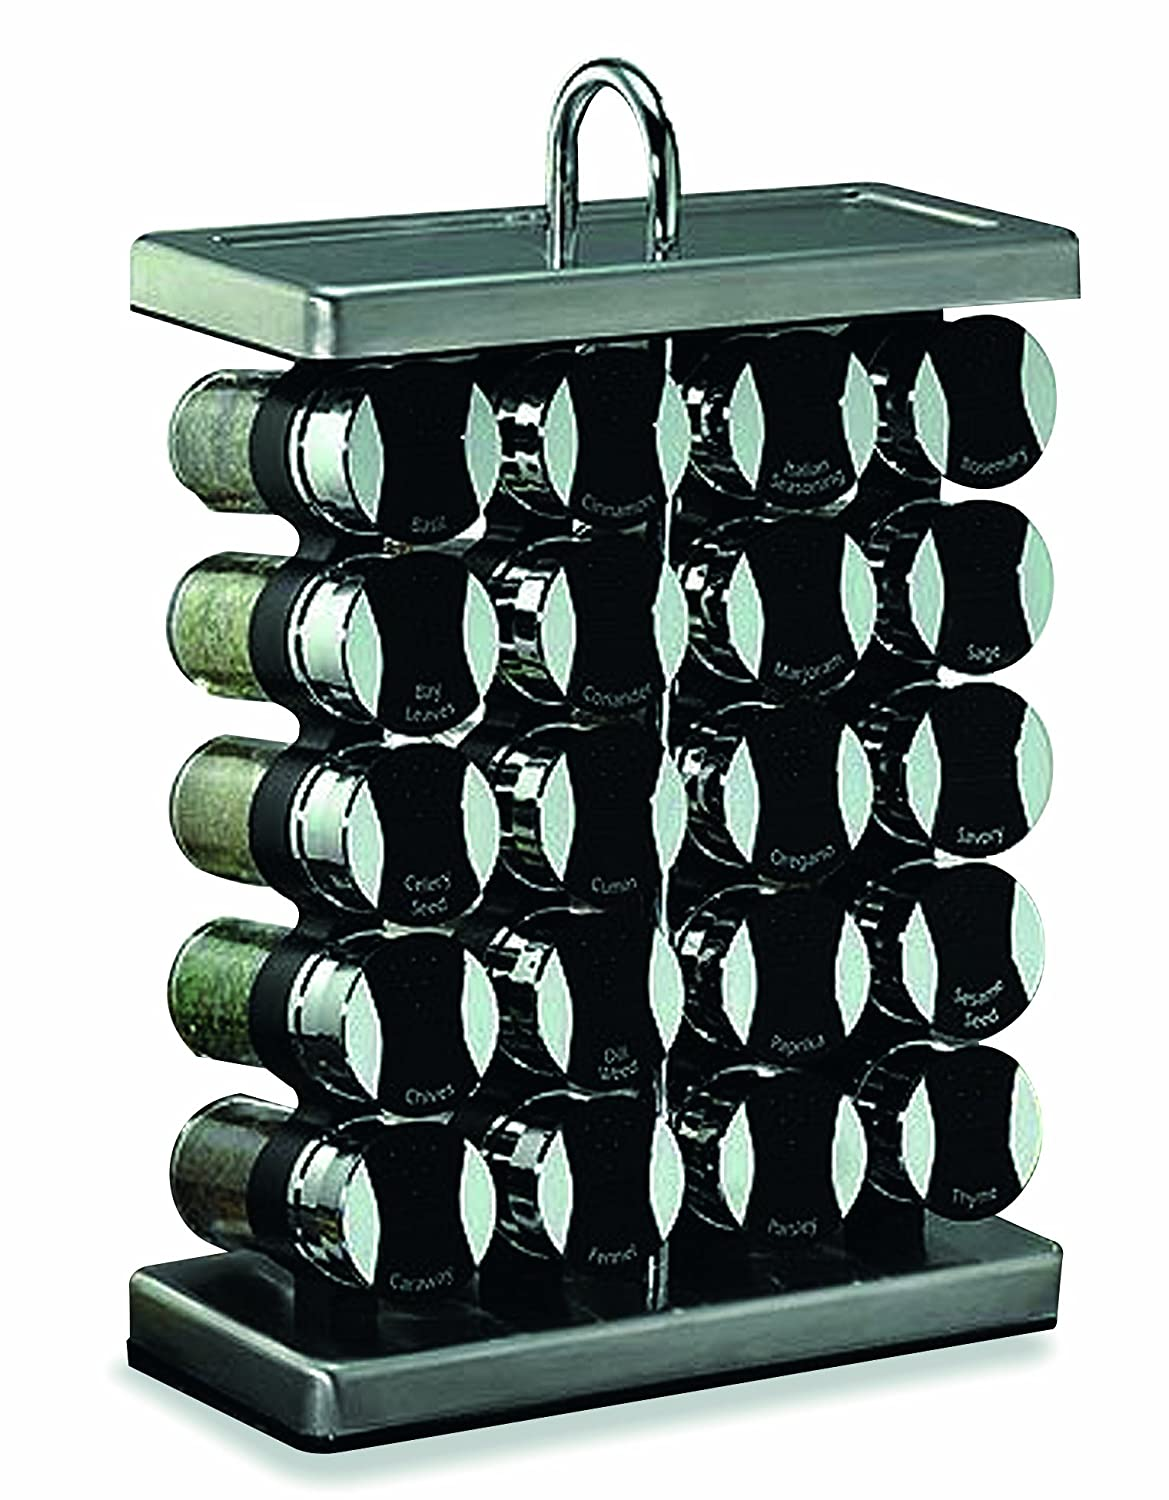 amazoncom olde thompson  jar stainlesssteel spice rack  - amazoncom olde thompson  jar stainlesssteel spice rack withspices kitchen  dining